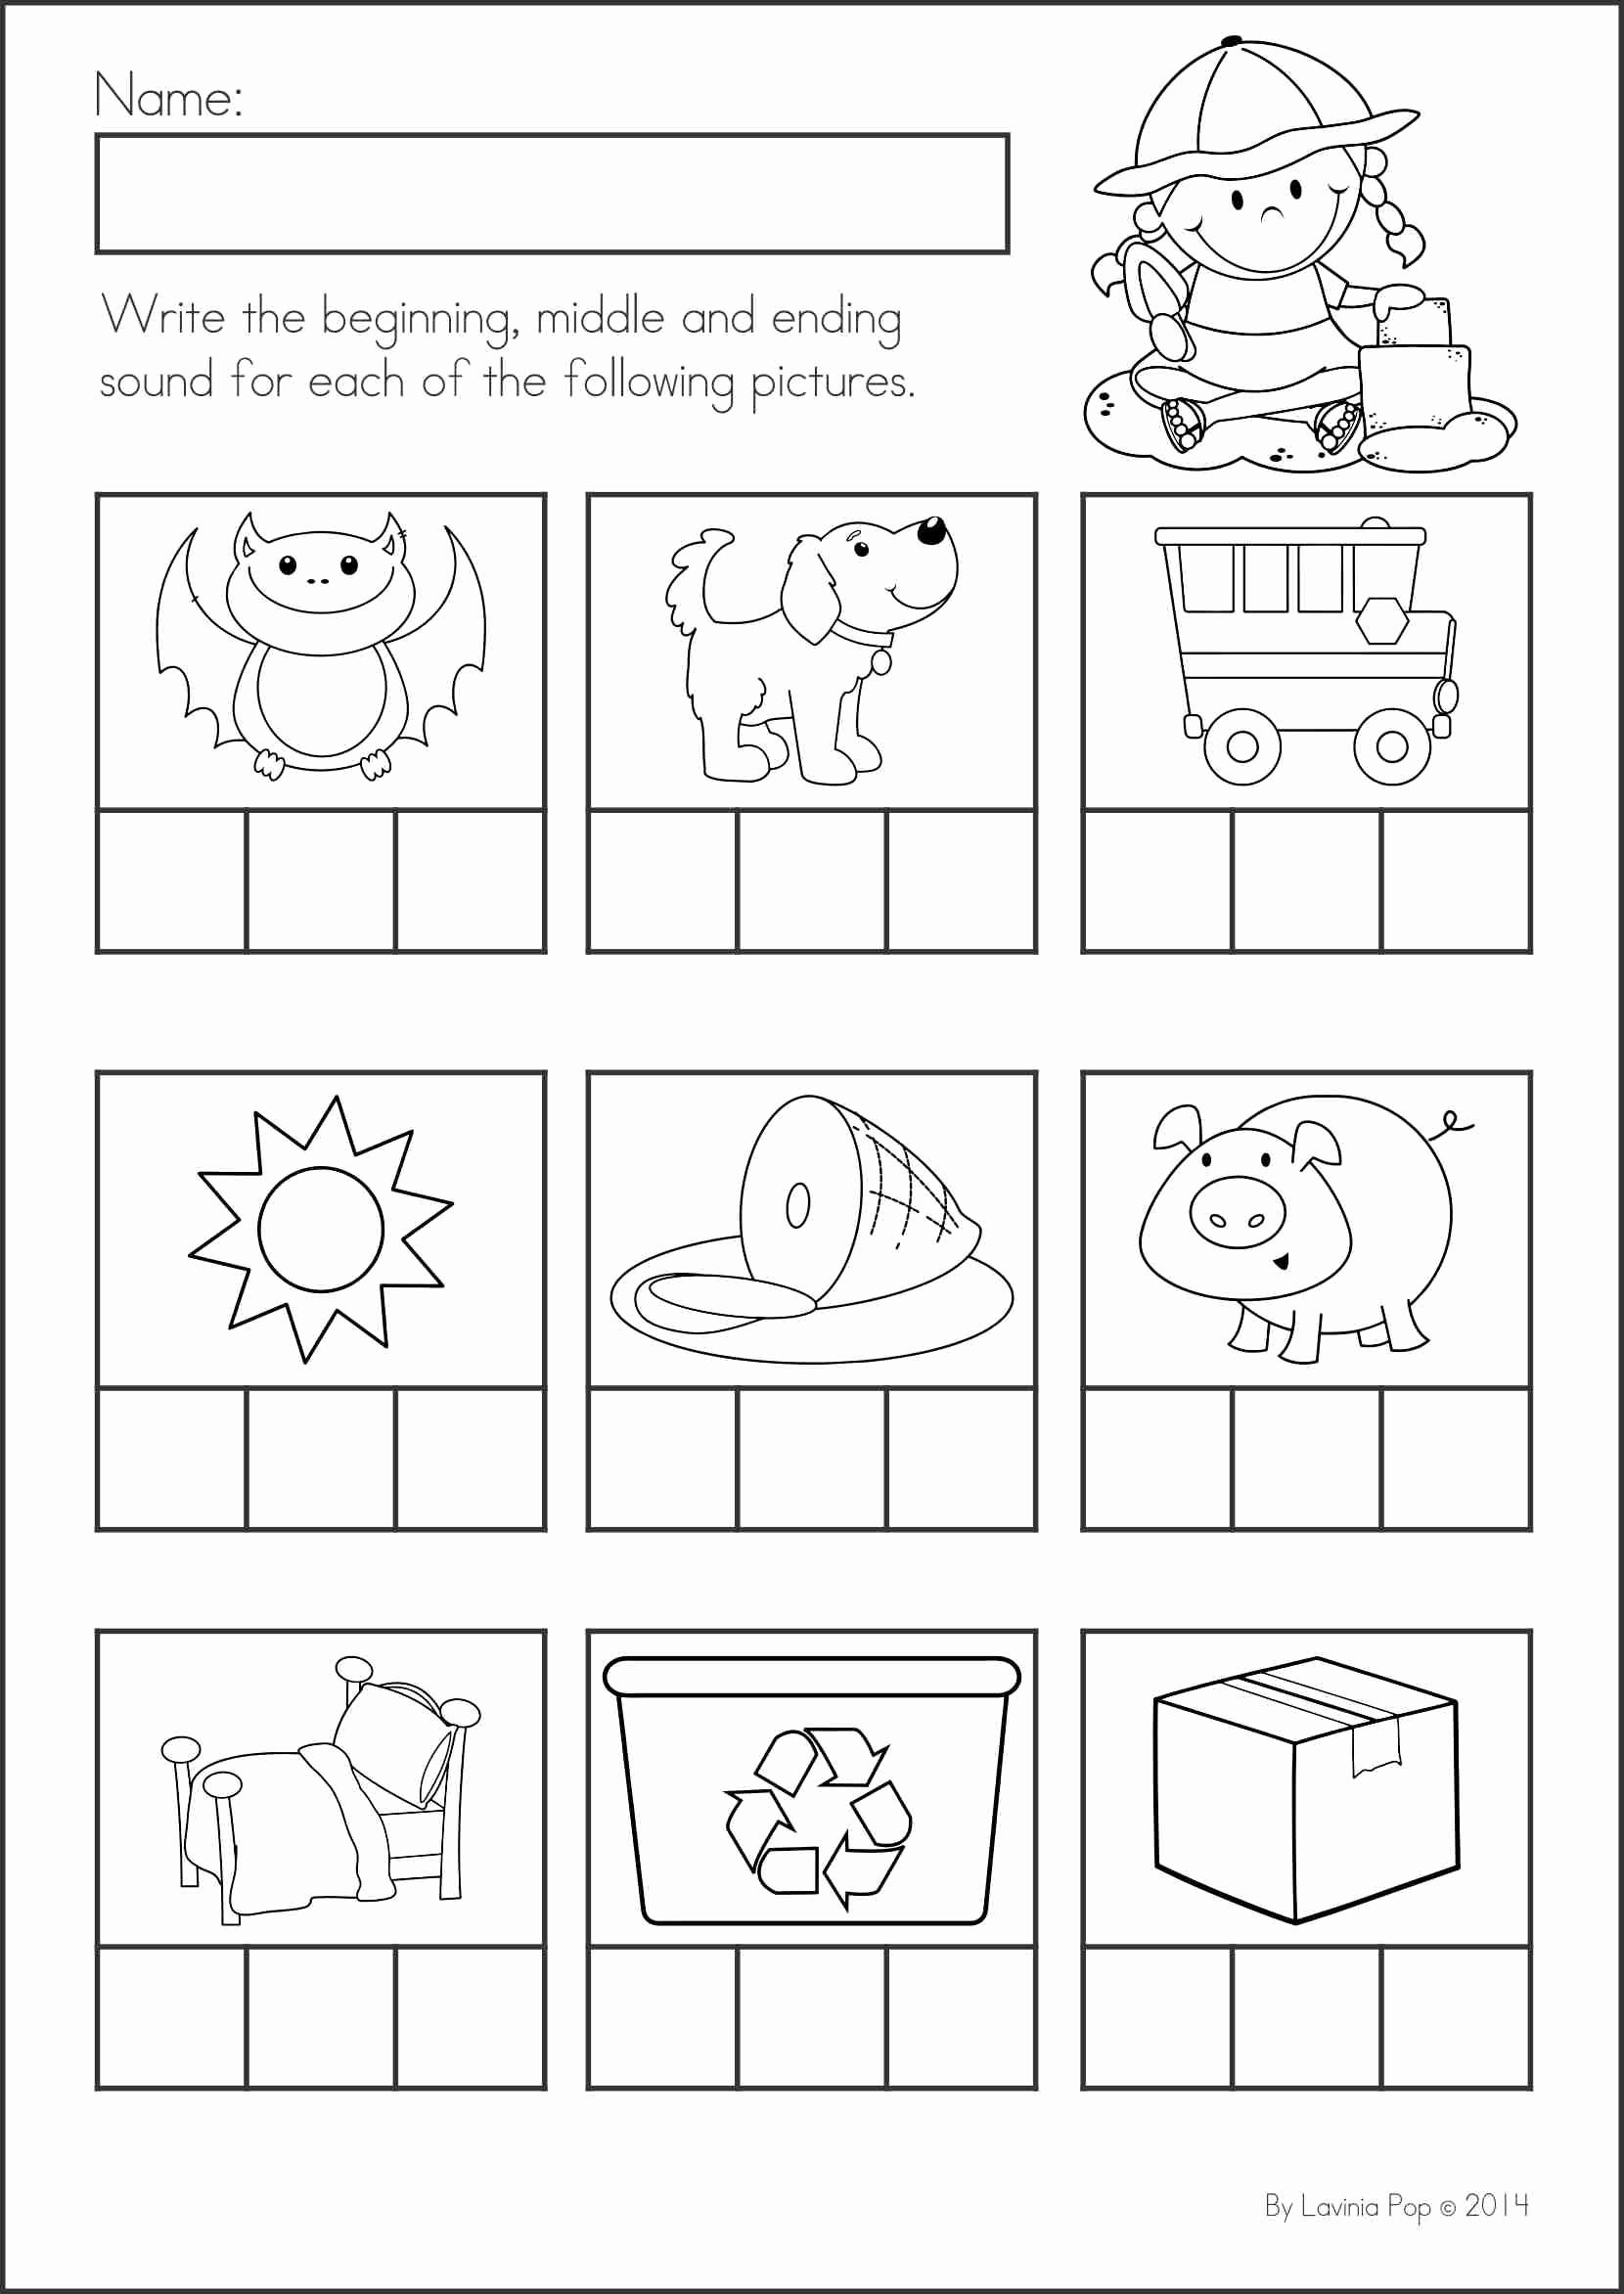 Cvc Words for Kindergarten Worksheets Fresh Summer Review Kindergarten Math & Literacy Worksheets